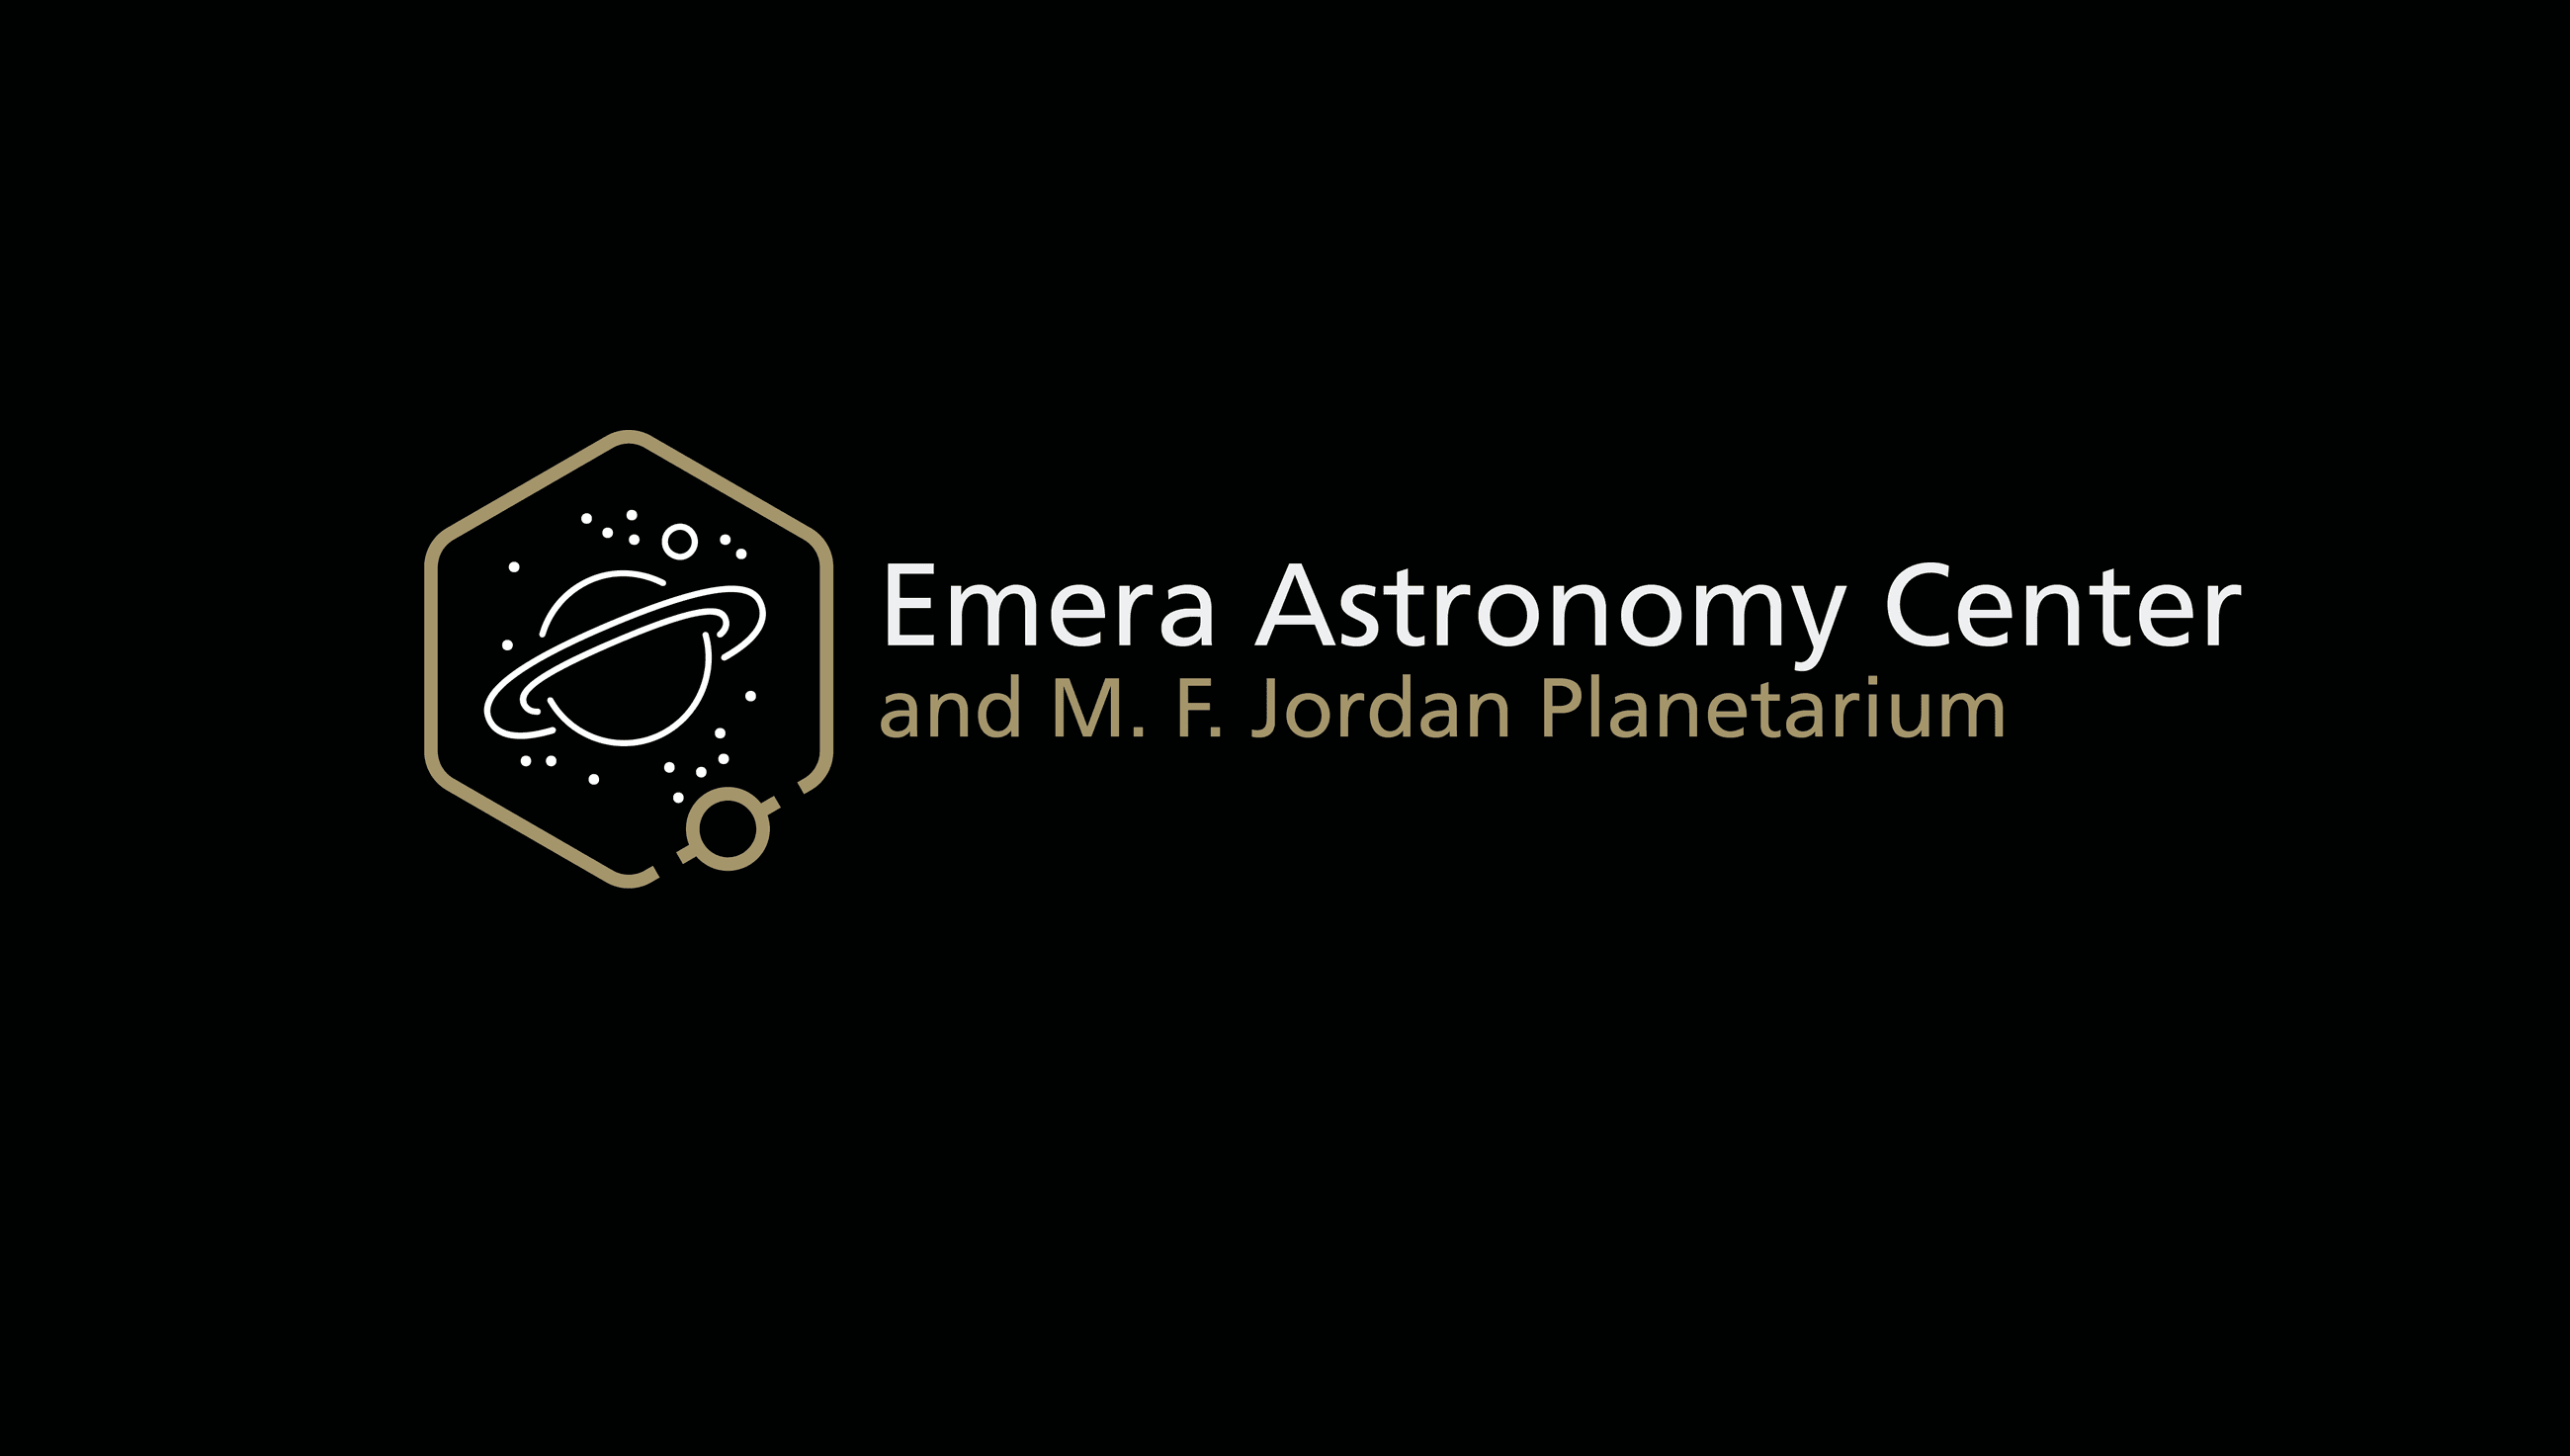 Emera Astronomy Center logo